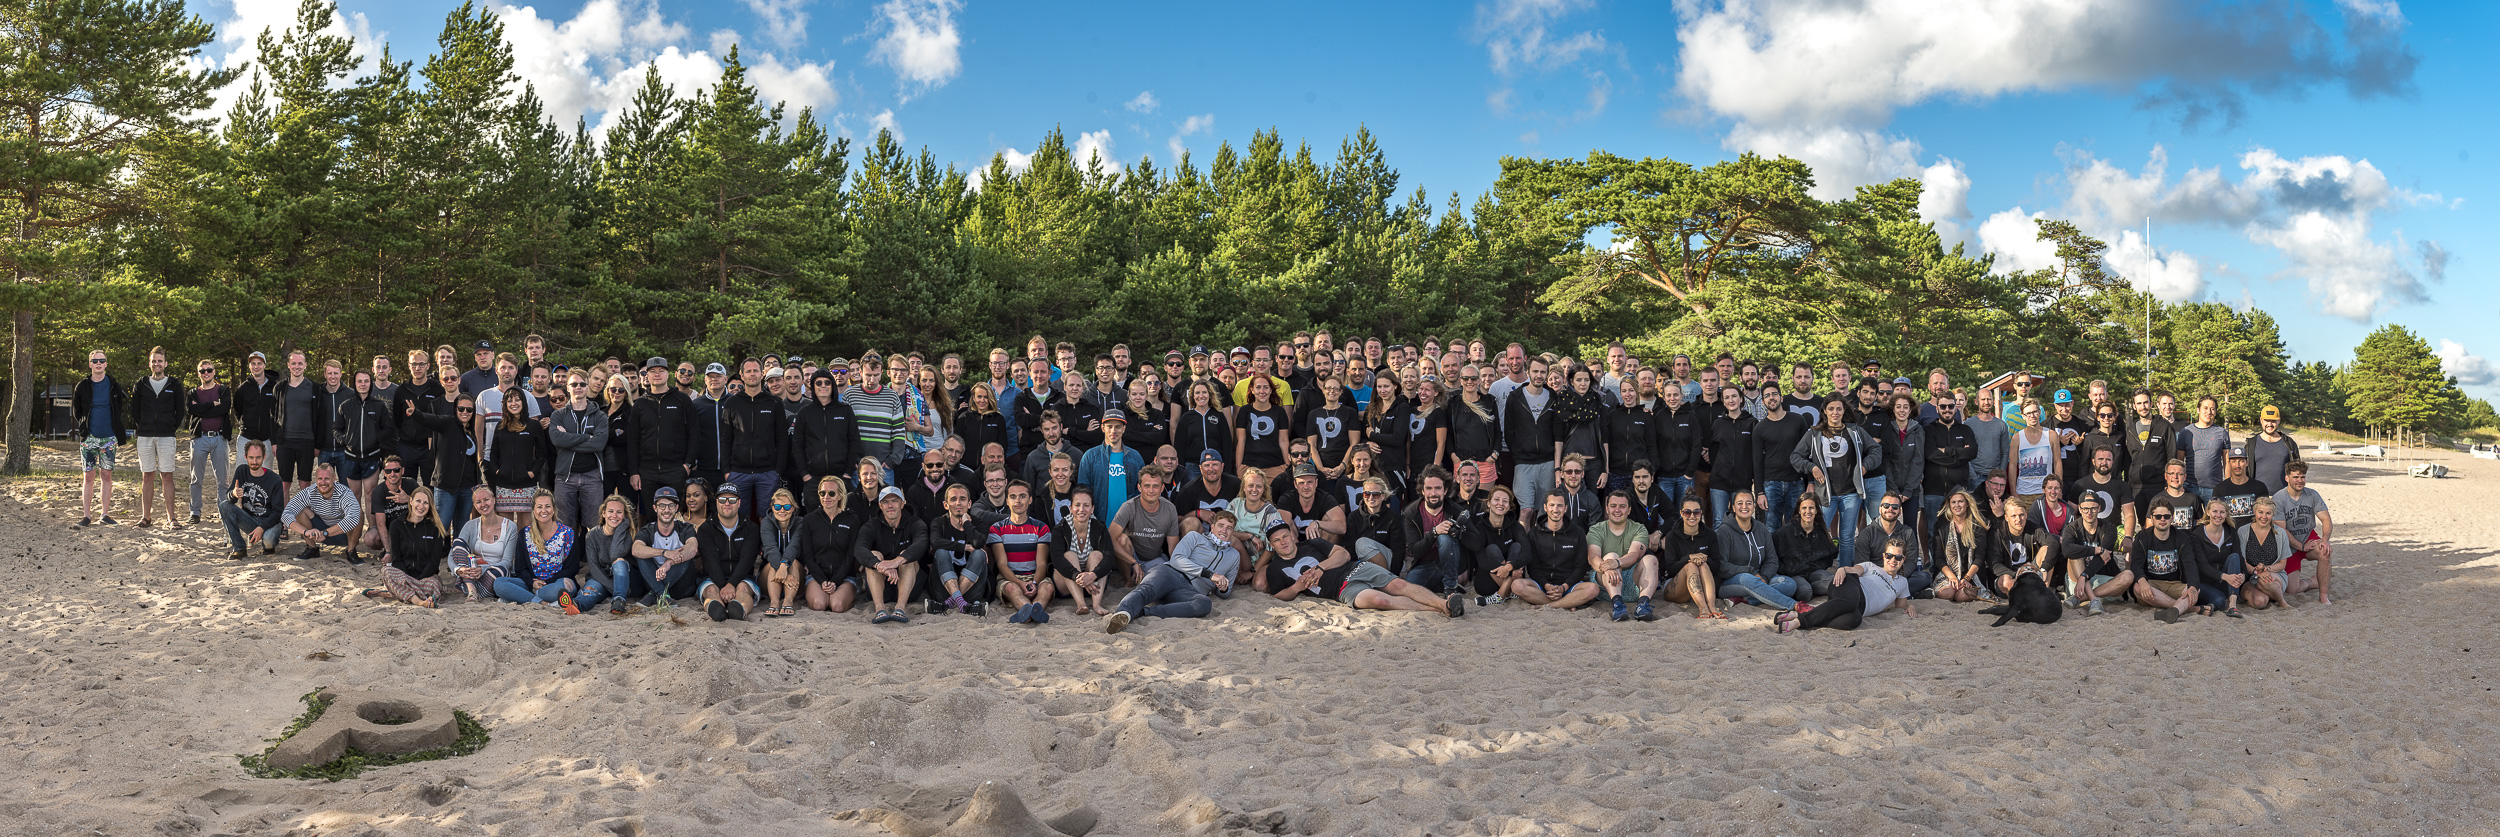 Pipedrive's $50M Series C Funding (and a Very Important Thank You Note)